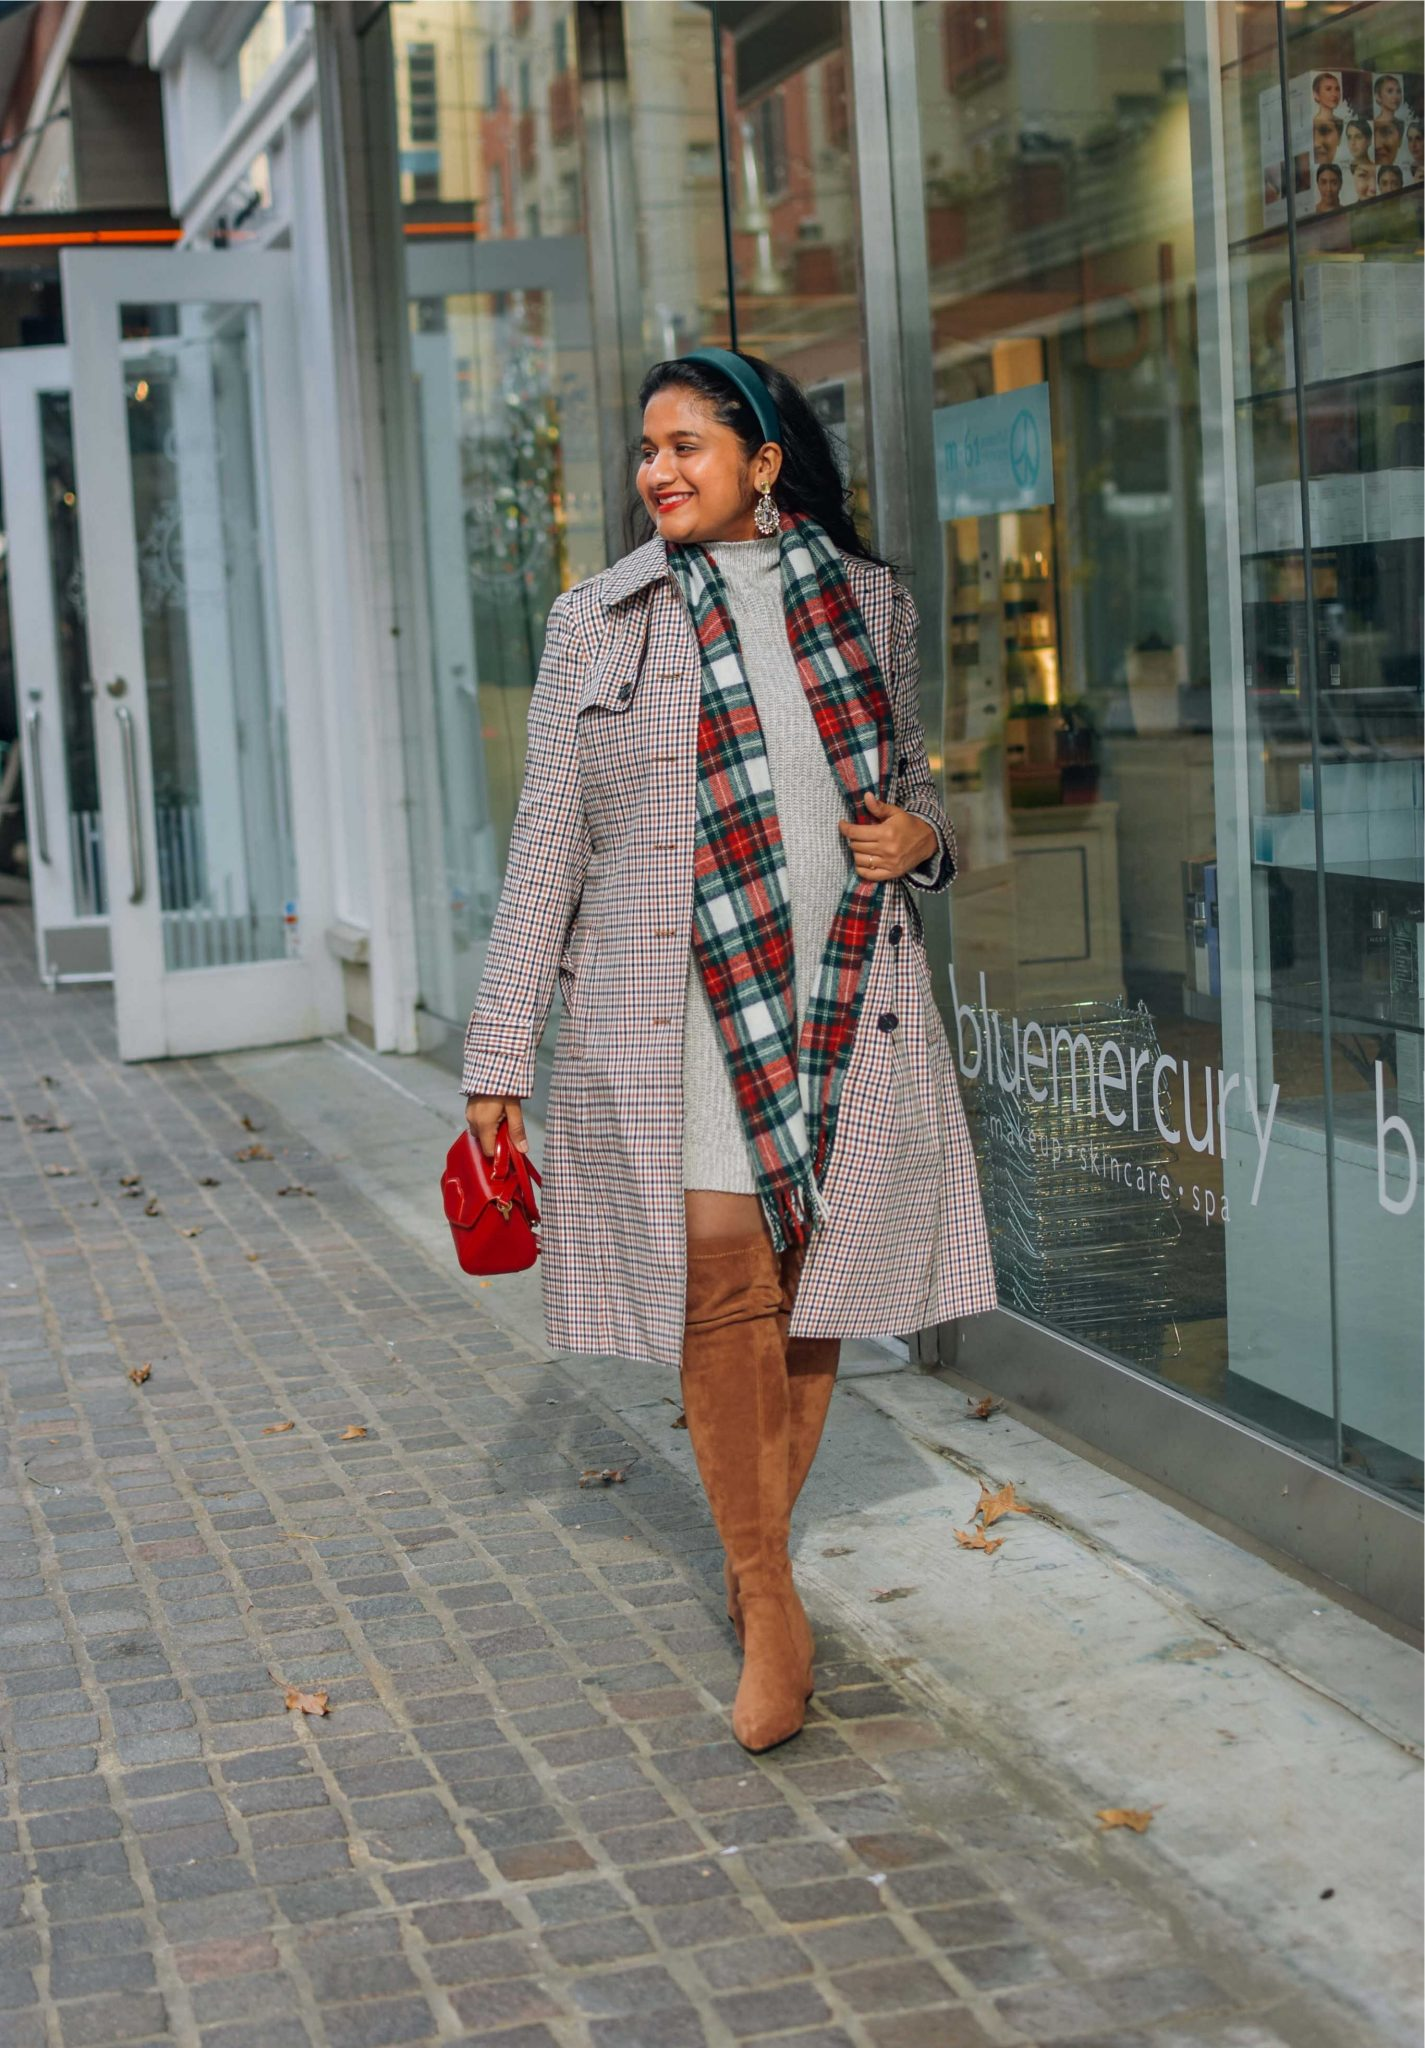 Wearing AE Sweater dress,Talbots polished plaid trench coat,Amazon OTK boots,J.crew Tartan scarf-Holiday Outfit ideas |Cute Holiday Outfit Ideas by popular Maryland modest fashion blog, Dreaming Loud: image of a woman wearing a AE Sweater dress, Amazon N.N.G OTK boots, J.crew Tartan scarf, and holding a lulu Guinness bag.